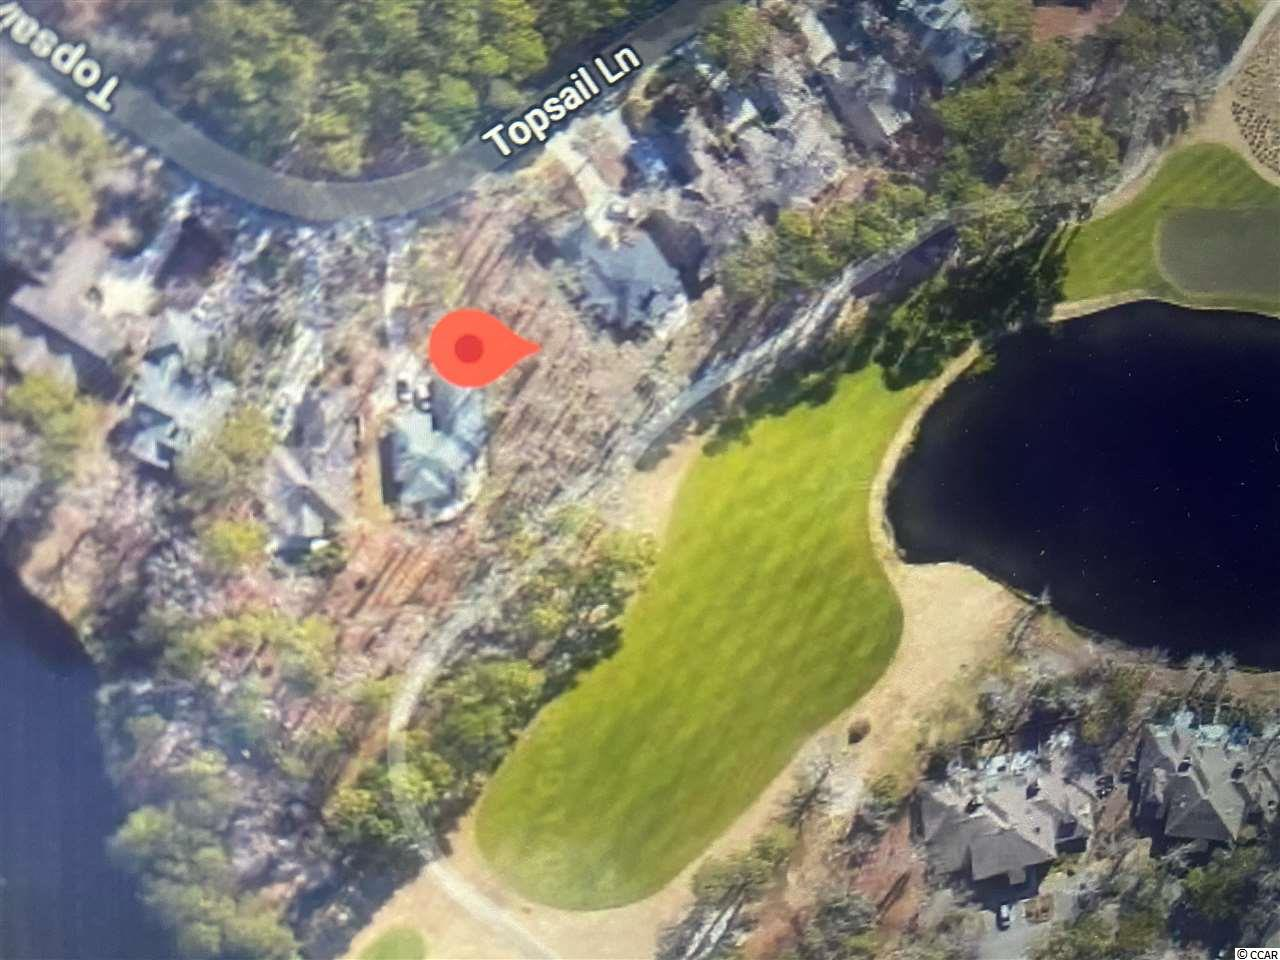 Build your dream home at the beach on this exceptional lot overlooking a lake and hole #10 of the golf course in the prestigious gated golf community of Tidewater Plantation.  Choose your own builder whenever you are ready, there is no time-frame to build.   Tidewater Plantation is a golf course community nestled in the heart of Cherry Grove Beach and along the Intra Coastal Waterway . Like no other in the area, this community offers 24-hour guard security conveniently  nearby to boutique shopping, beloved Cherry Grove beach, and simply the best restaurants.  Tidewater Plantation offers luxurious amenities including access to a private owners only beach cabana in Cherry Grove, numerous pools & jacuzzis, state of the art fitness center, tennis courts, club house with restaurant, and amenity center. The natural landscape and beauty of this community is unparalleled to any other in the area.   Do not delay on purchasing one of last the few lots left with an amazing lake and golf course view!! This wont last long!